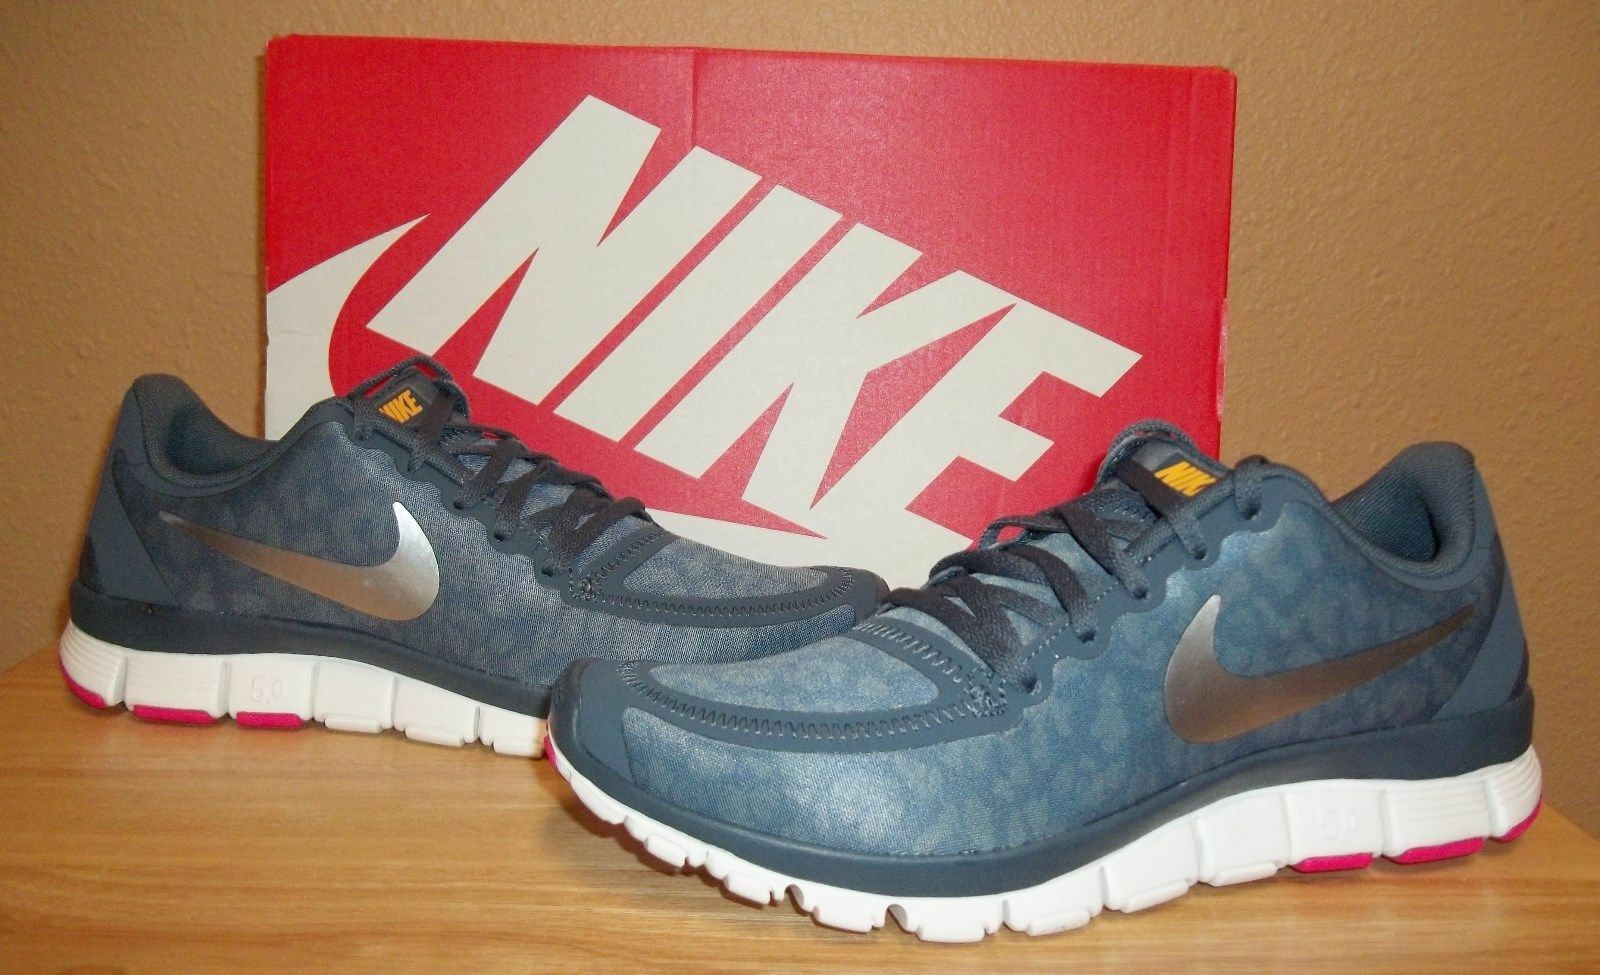 NIKE Free 5.0 V4 Women's Running Shoes sz US 5 Armory Blue Leopard Print NIB New